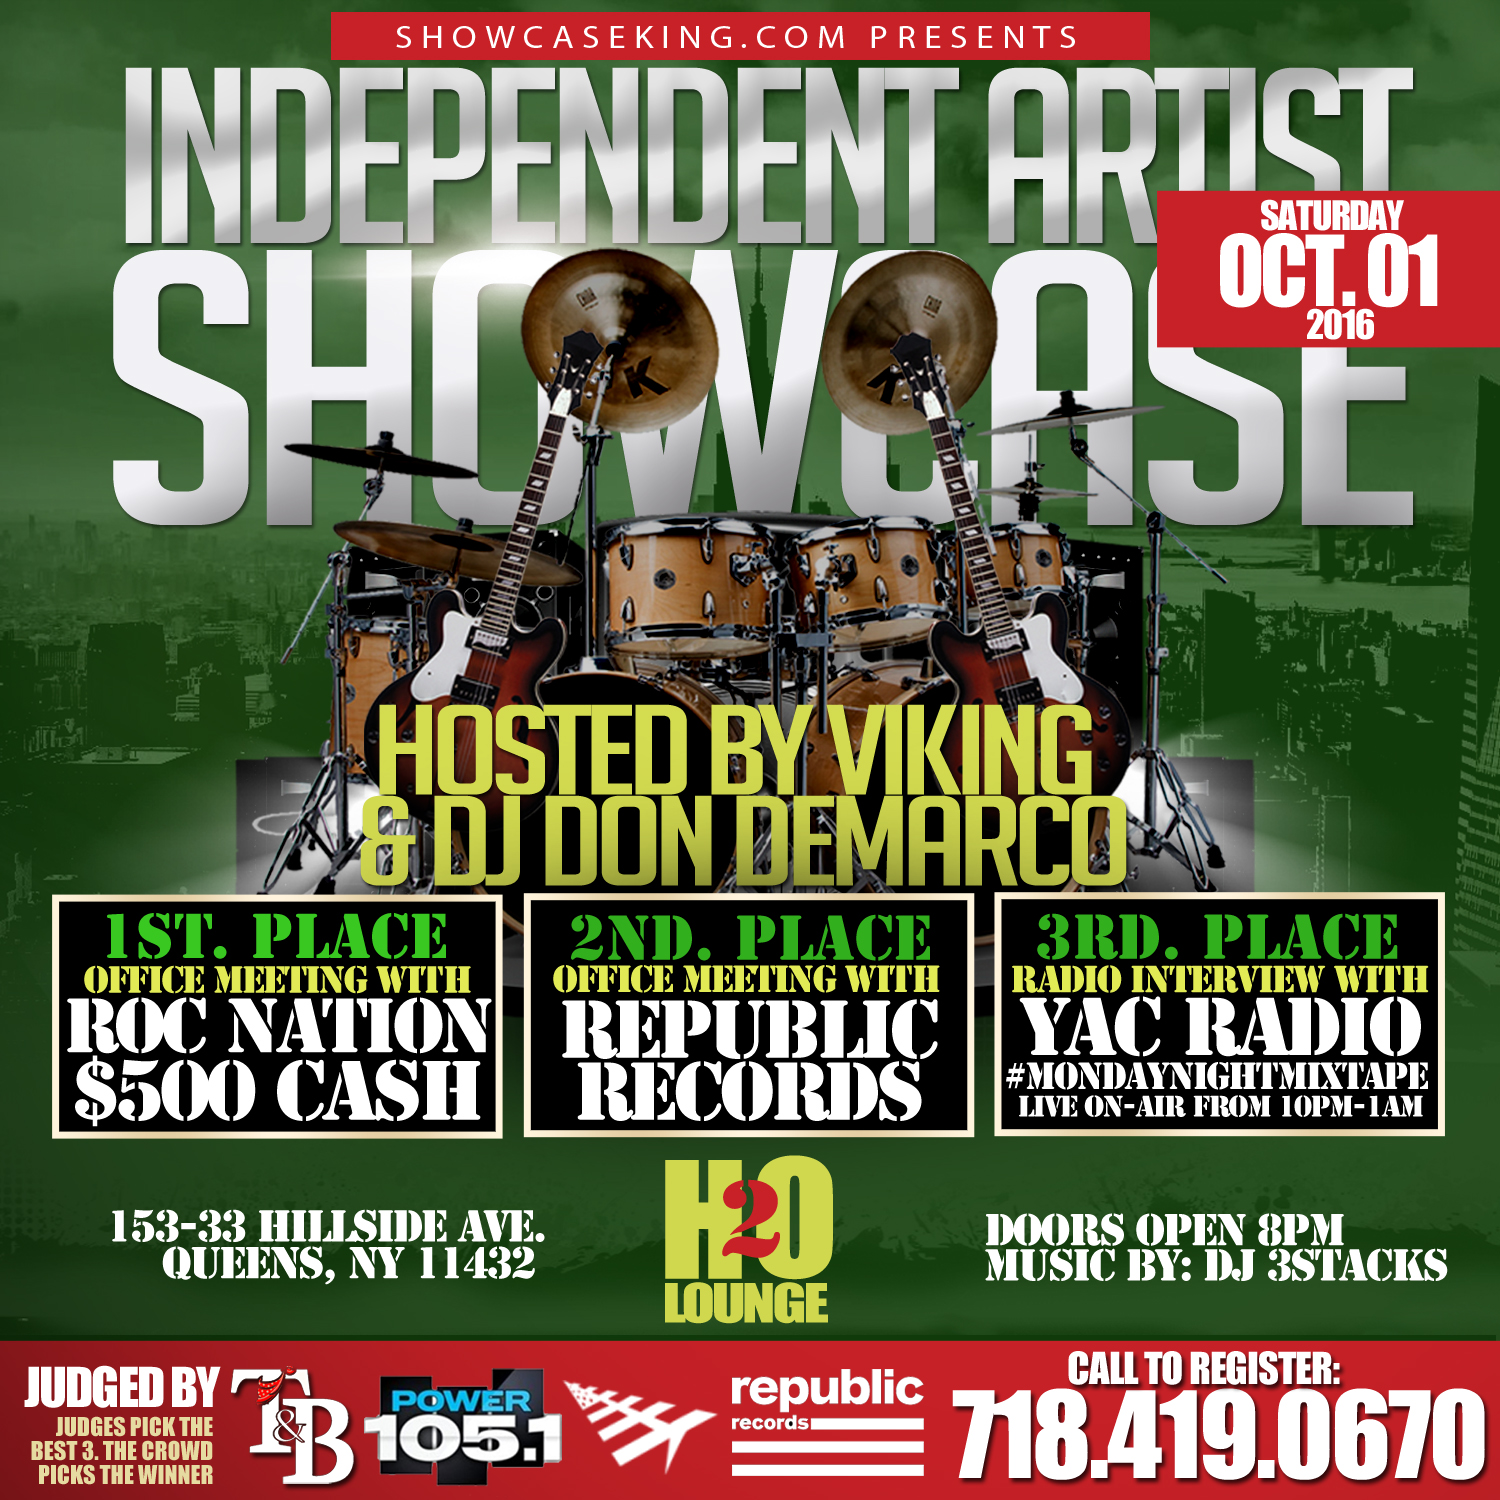 showcase king inc in association with tb management presents the independent artist showcase going down saturday oct 01 2016 at h2o lounge 153 33